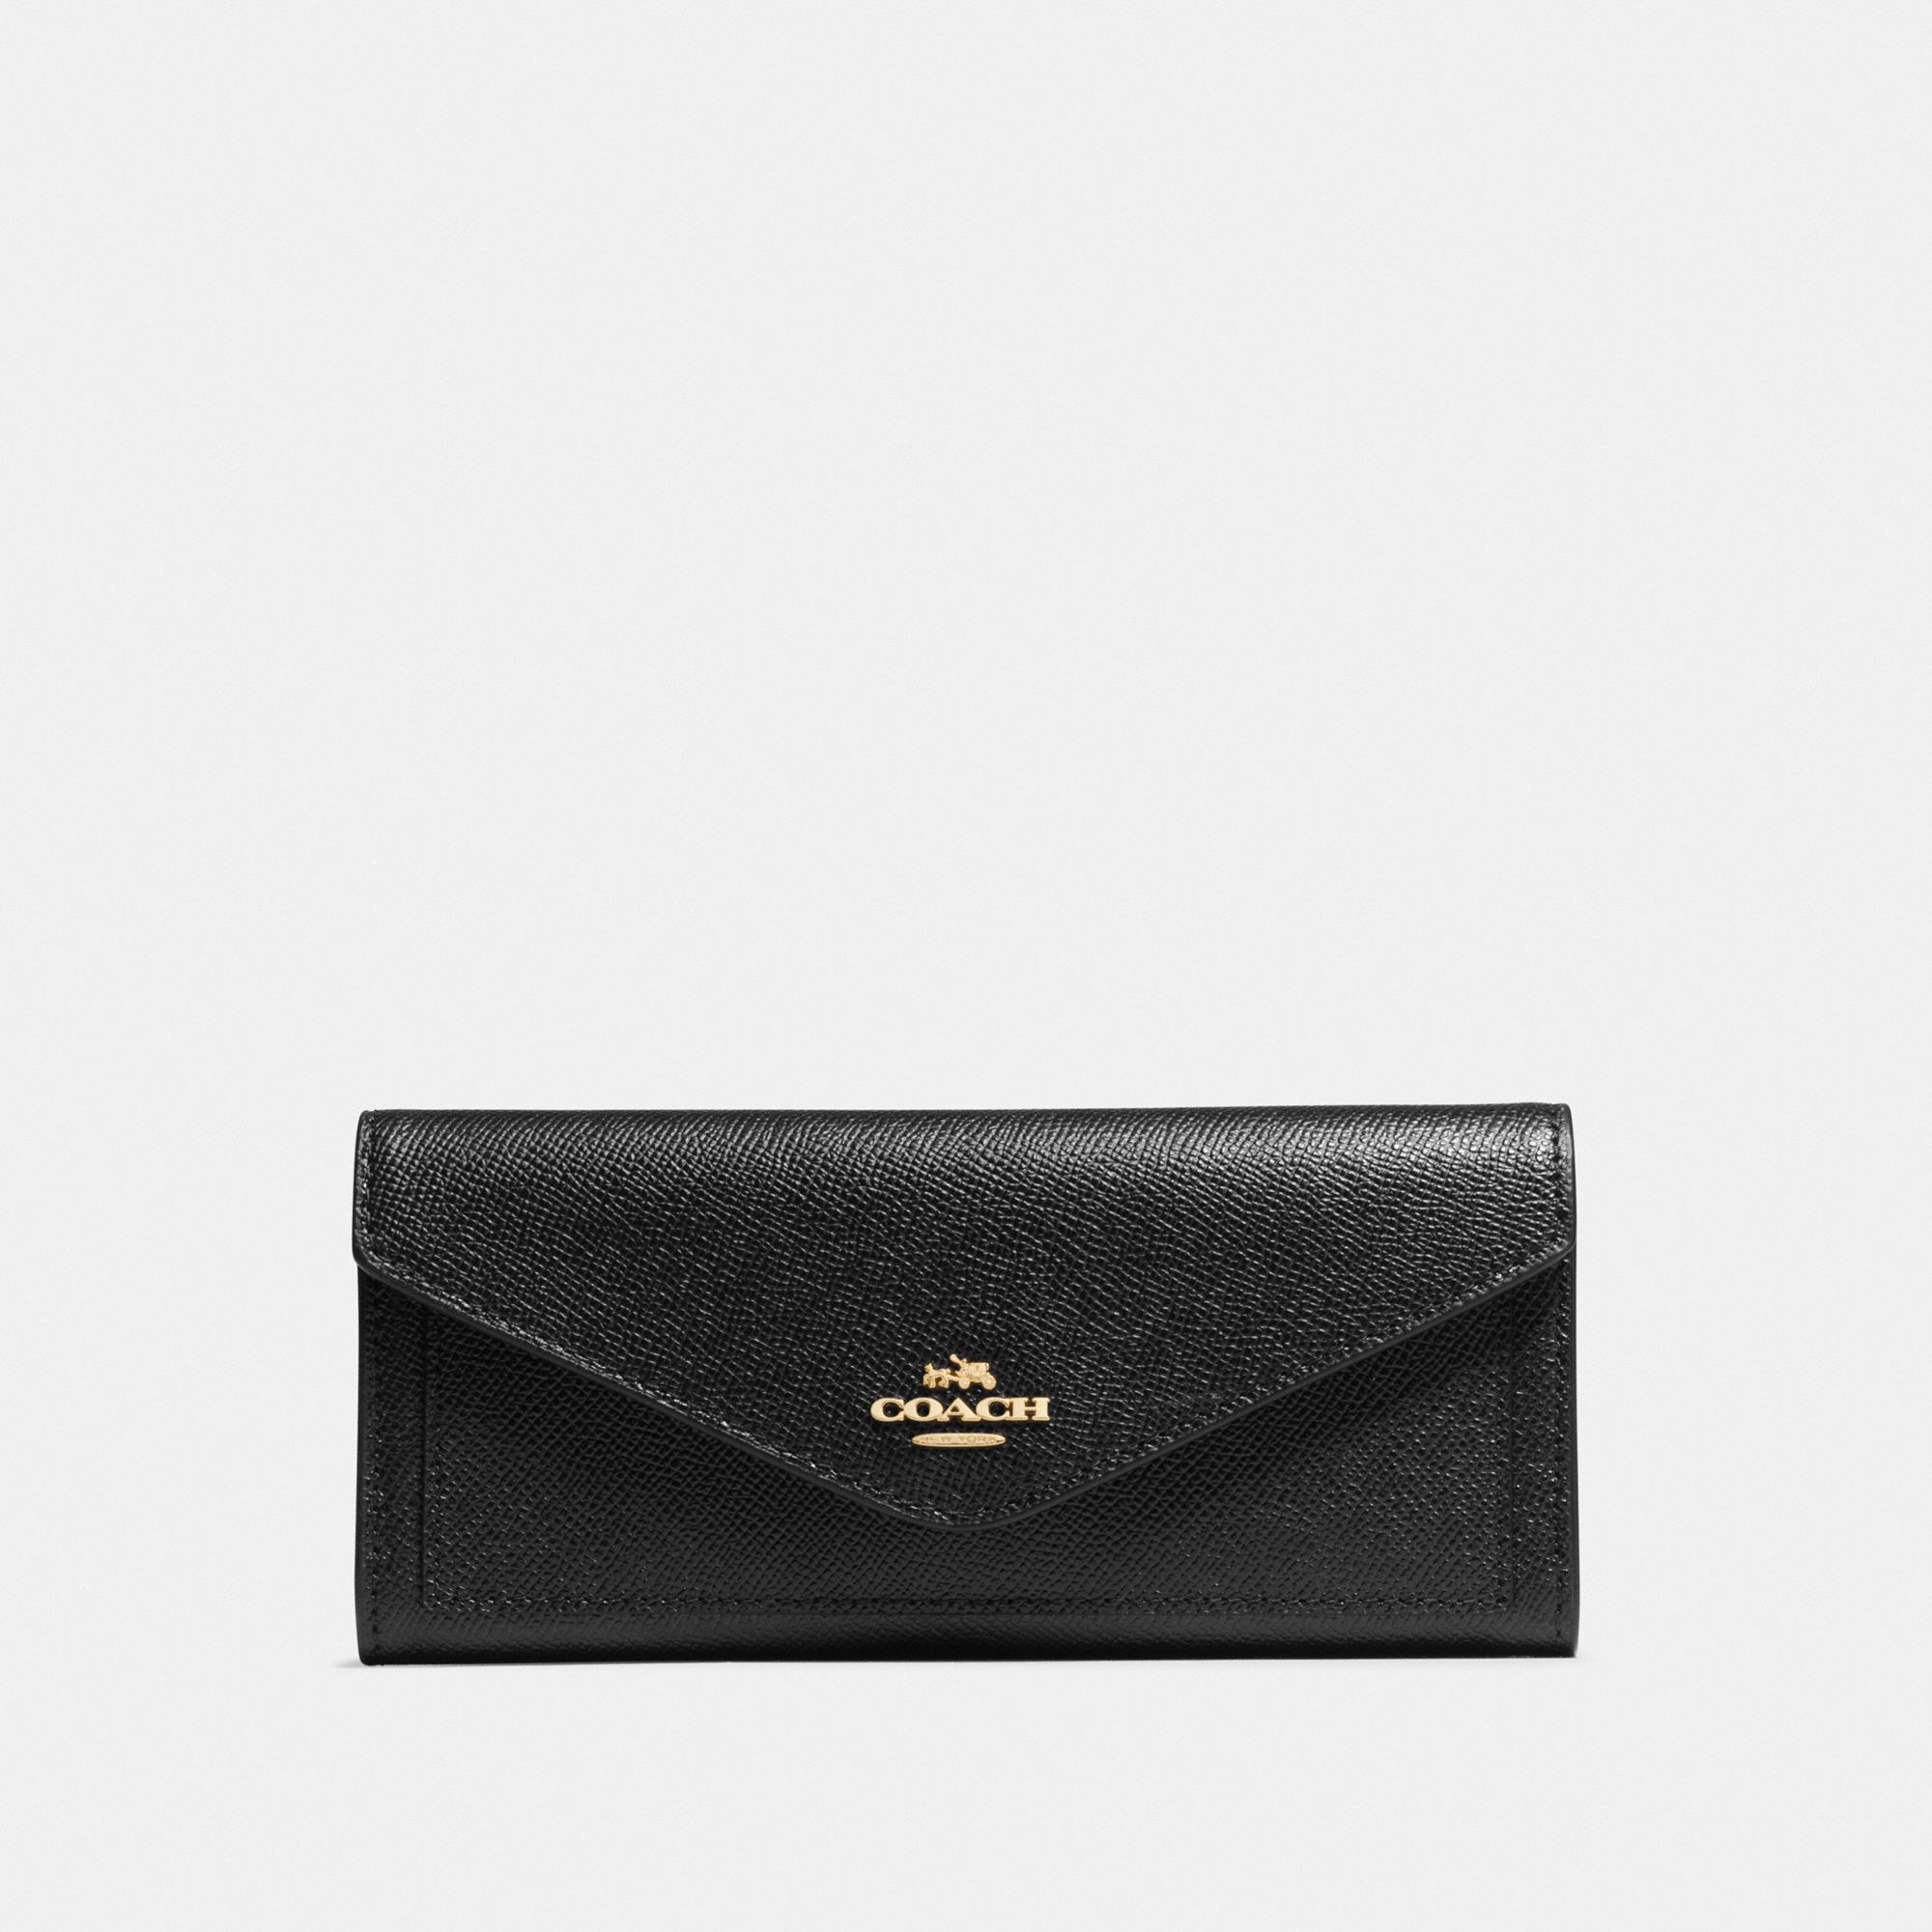 Coach Soft Wallet - Black/Light Gold